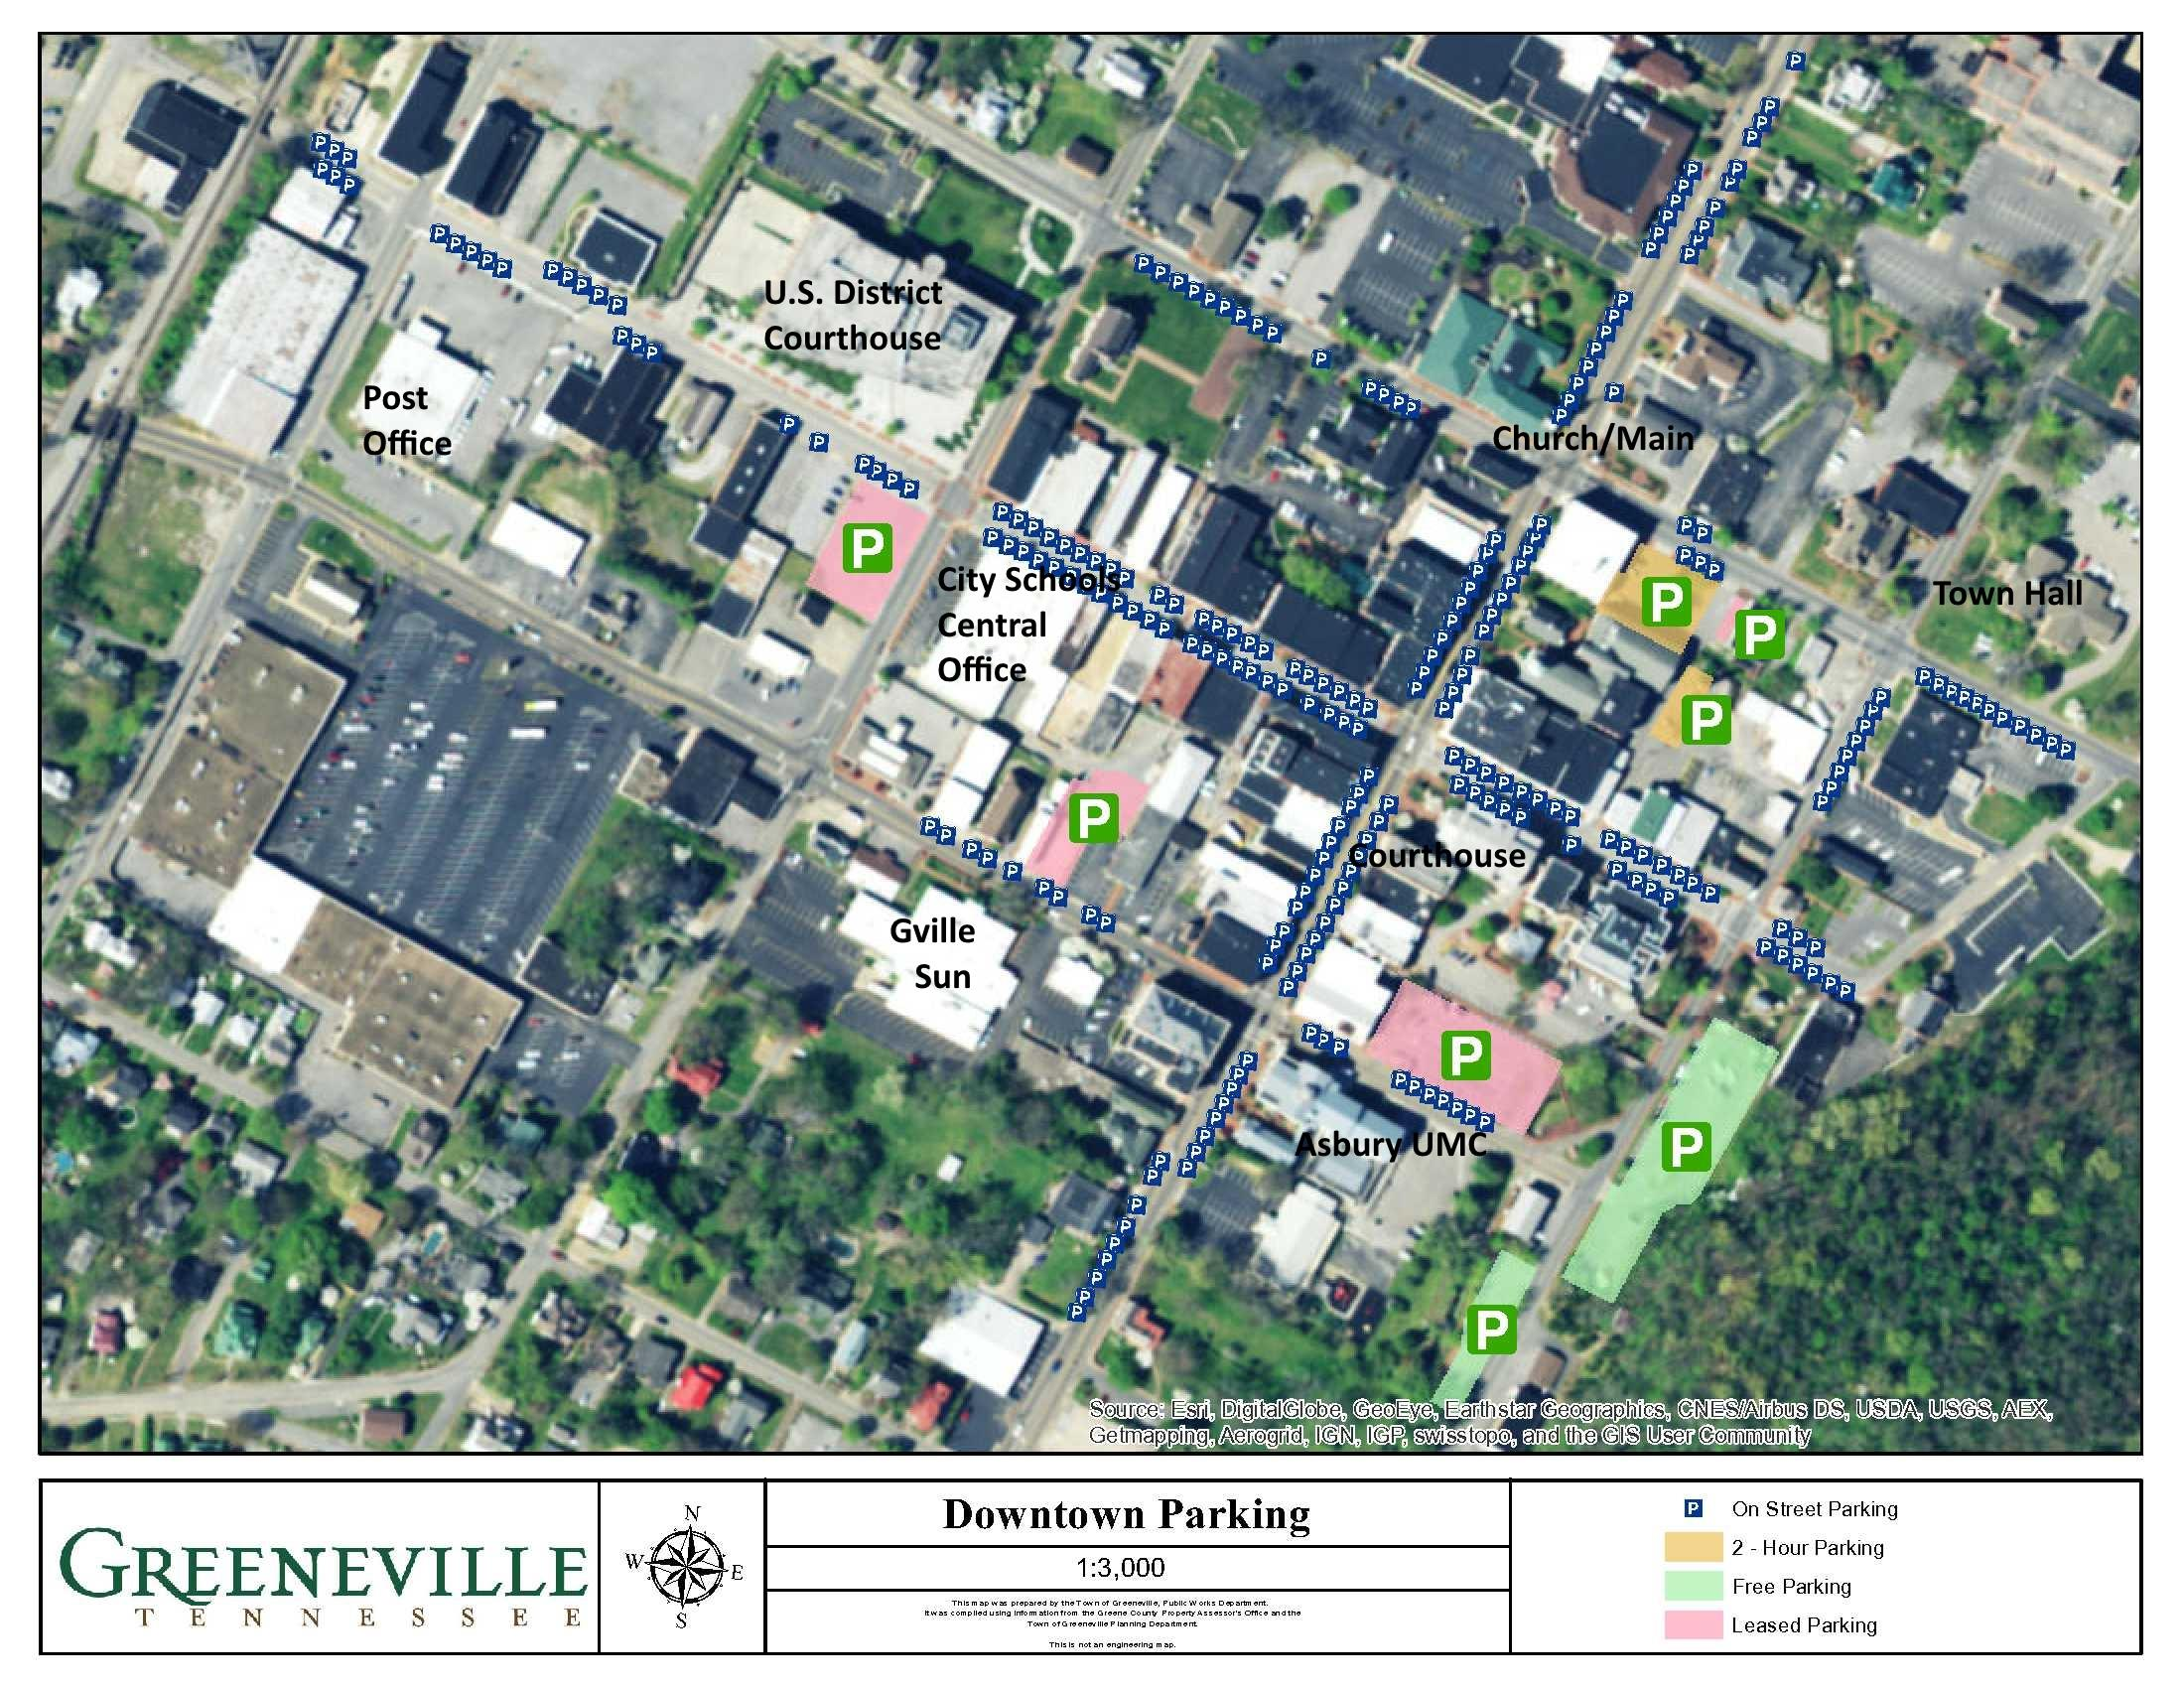 Fire Stations – Fire – Town of Greeneville on buffalo mountain johnson city tn map, smith county tn map, greeneville greene county tn map, greeneville tennessee,